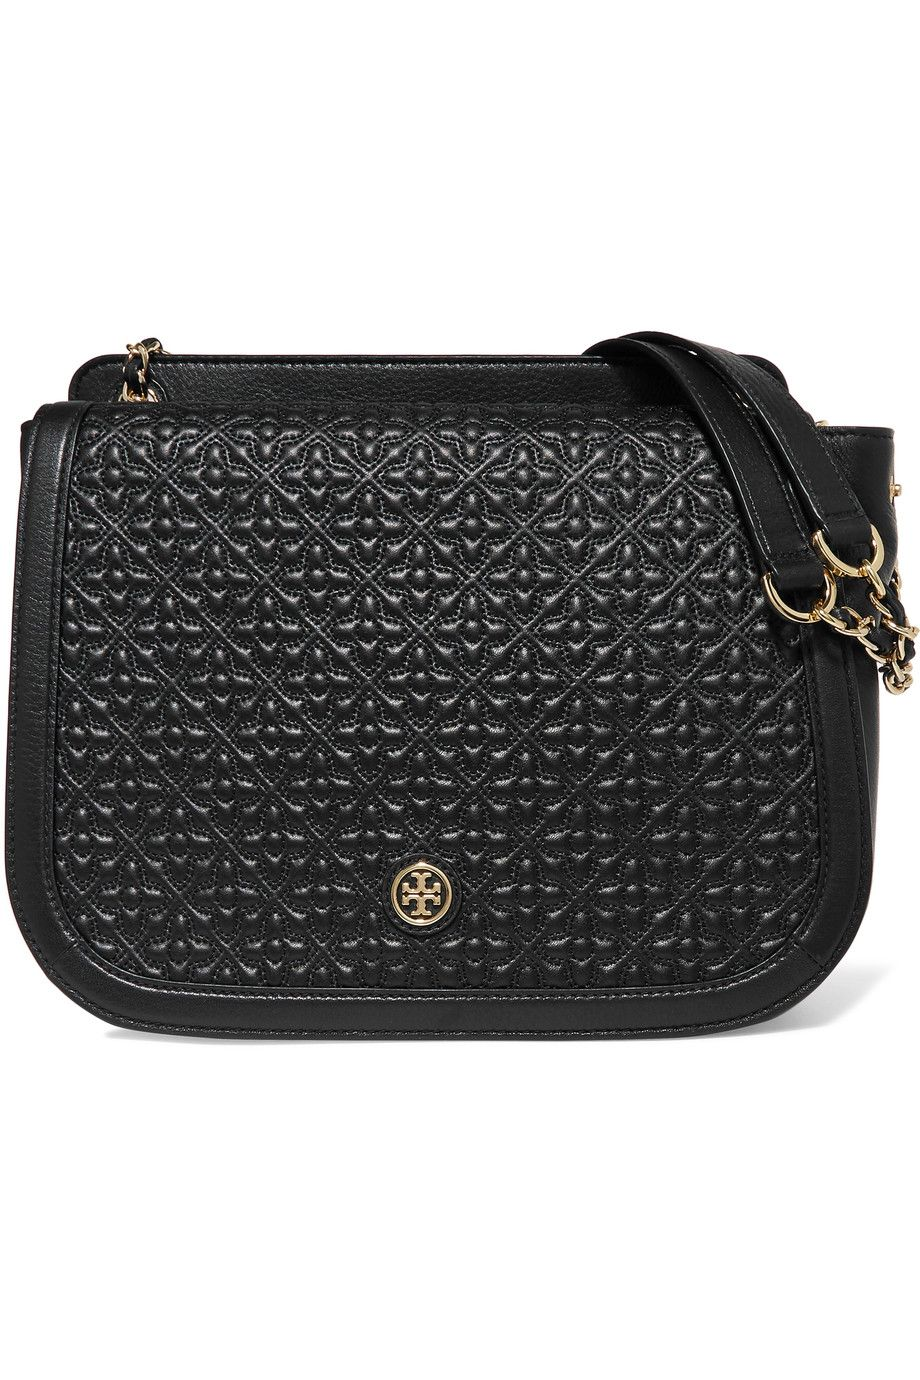 TORY BURCH Bryant quilted and textured-leather shoulder bag.